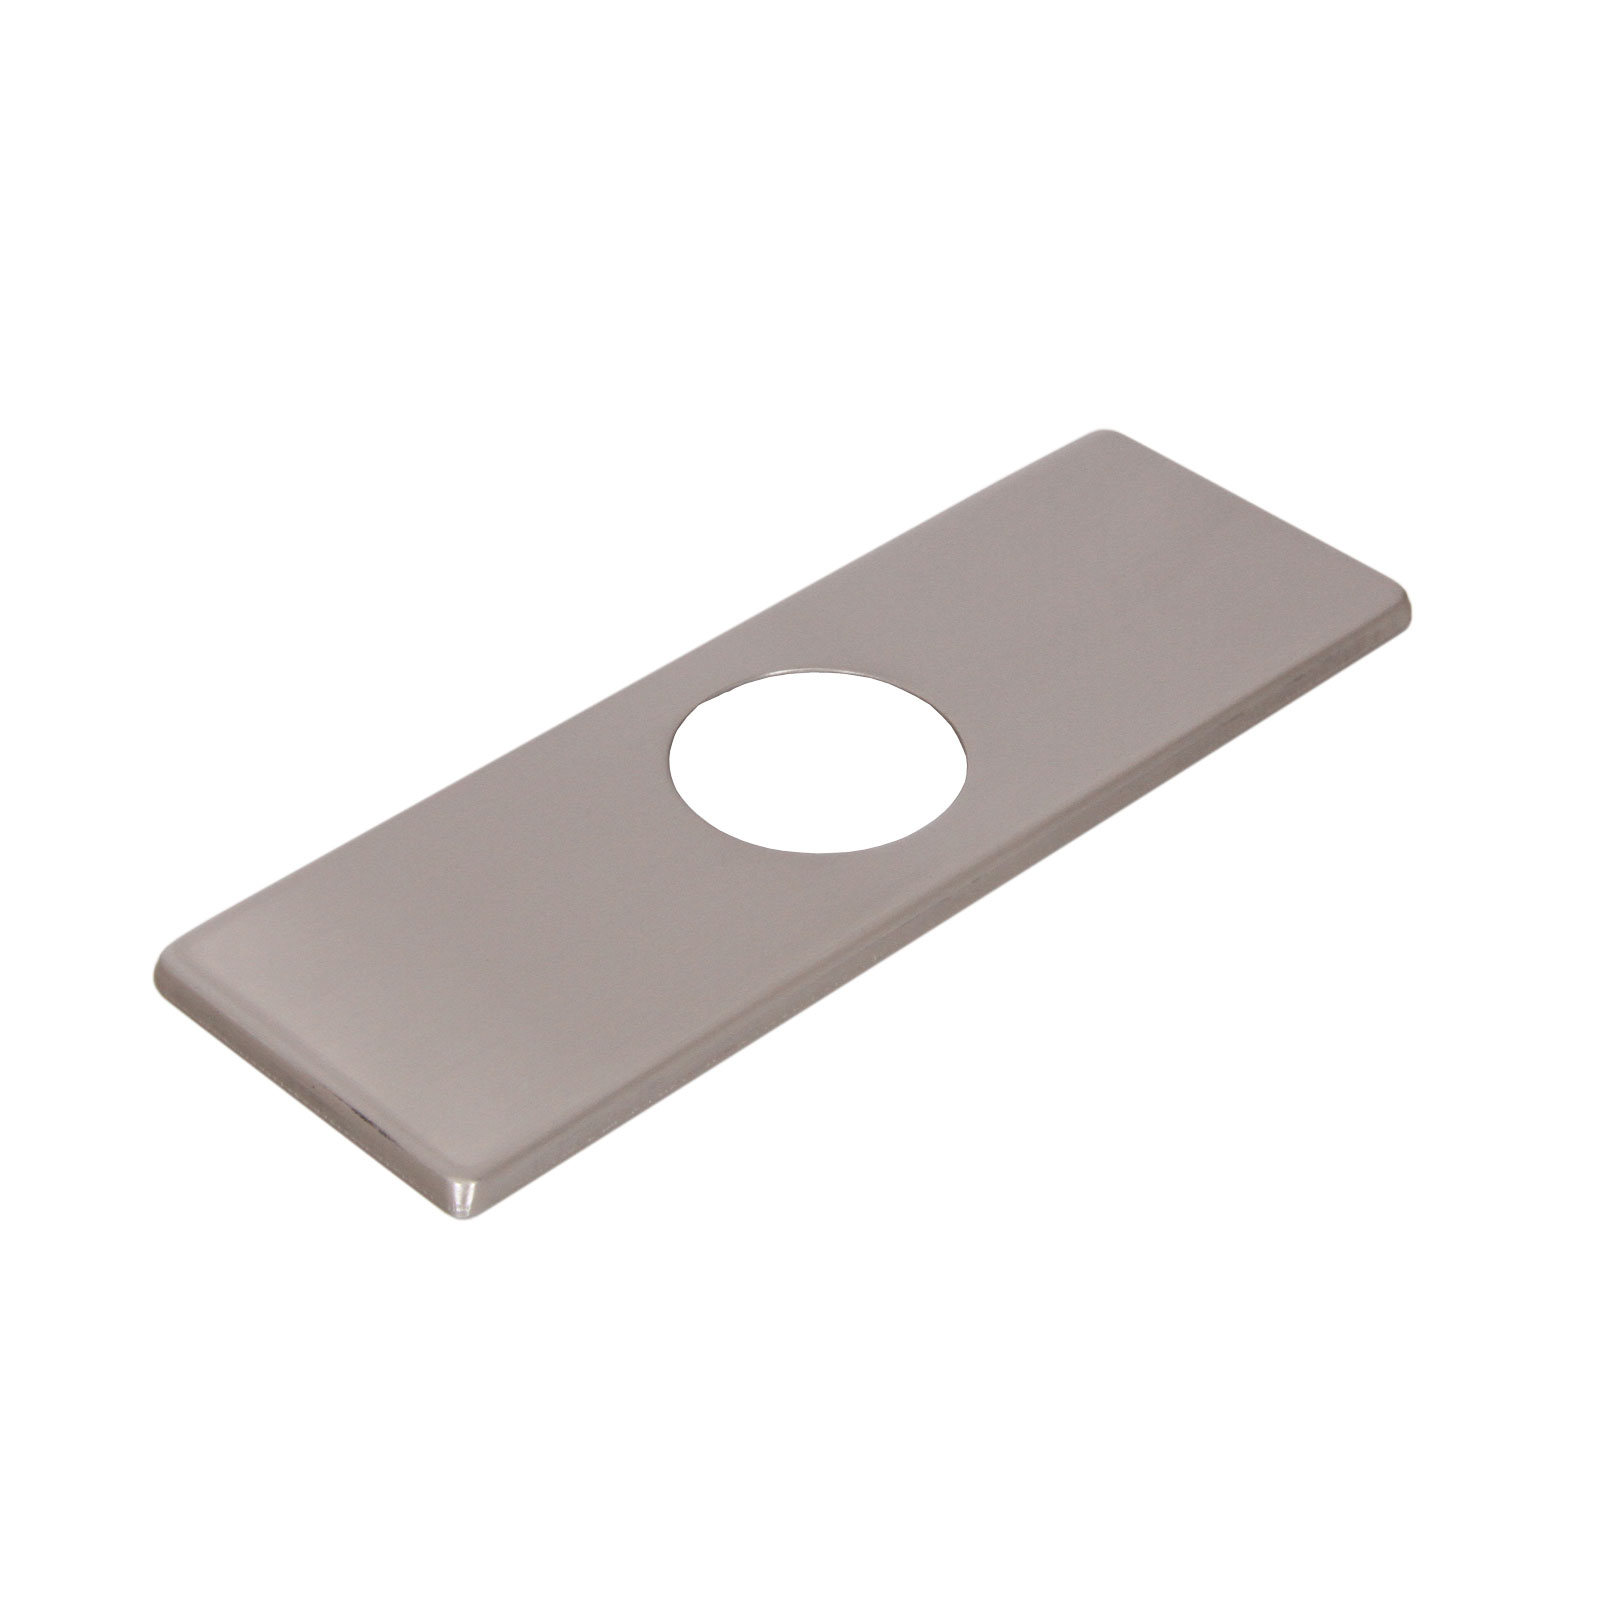 Deck plate for bathroom faucet